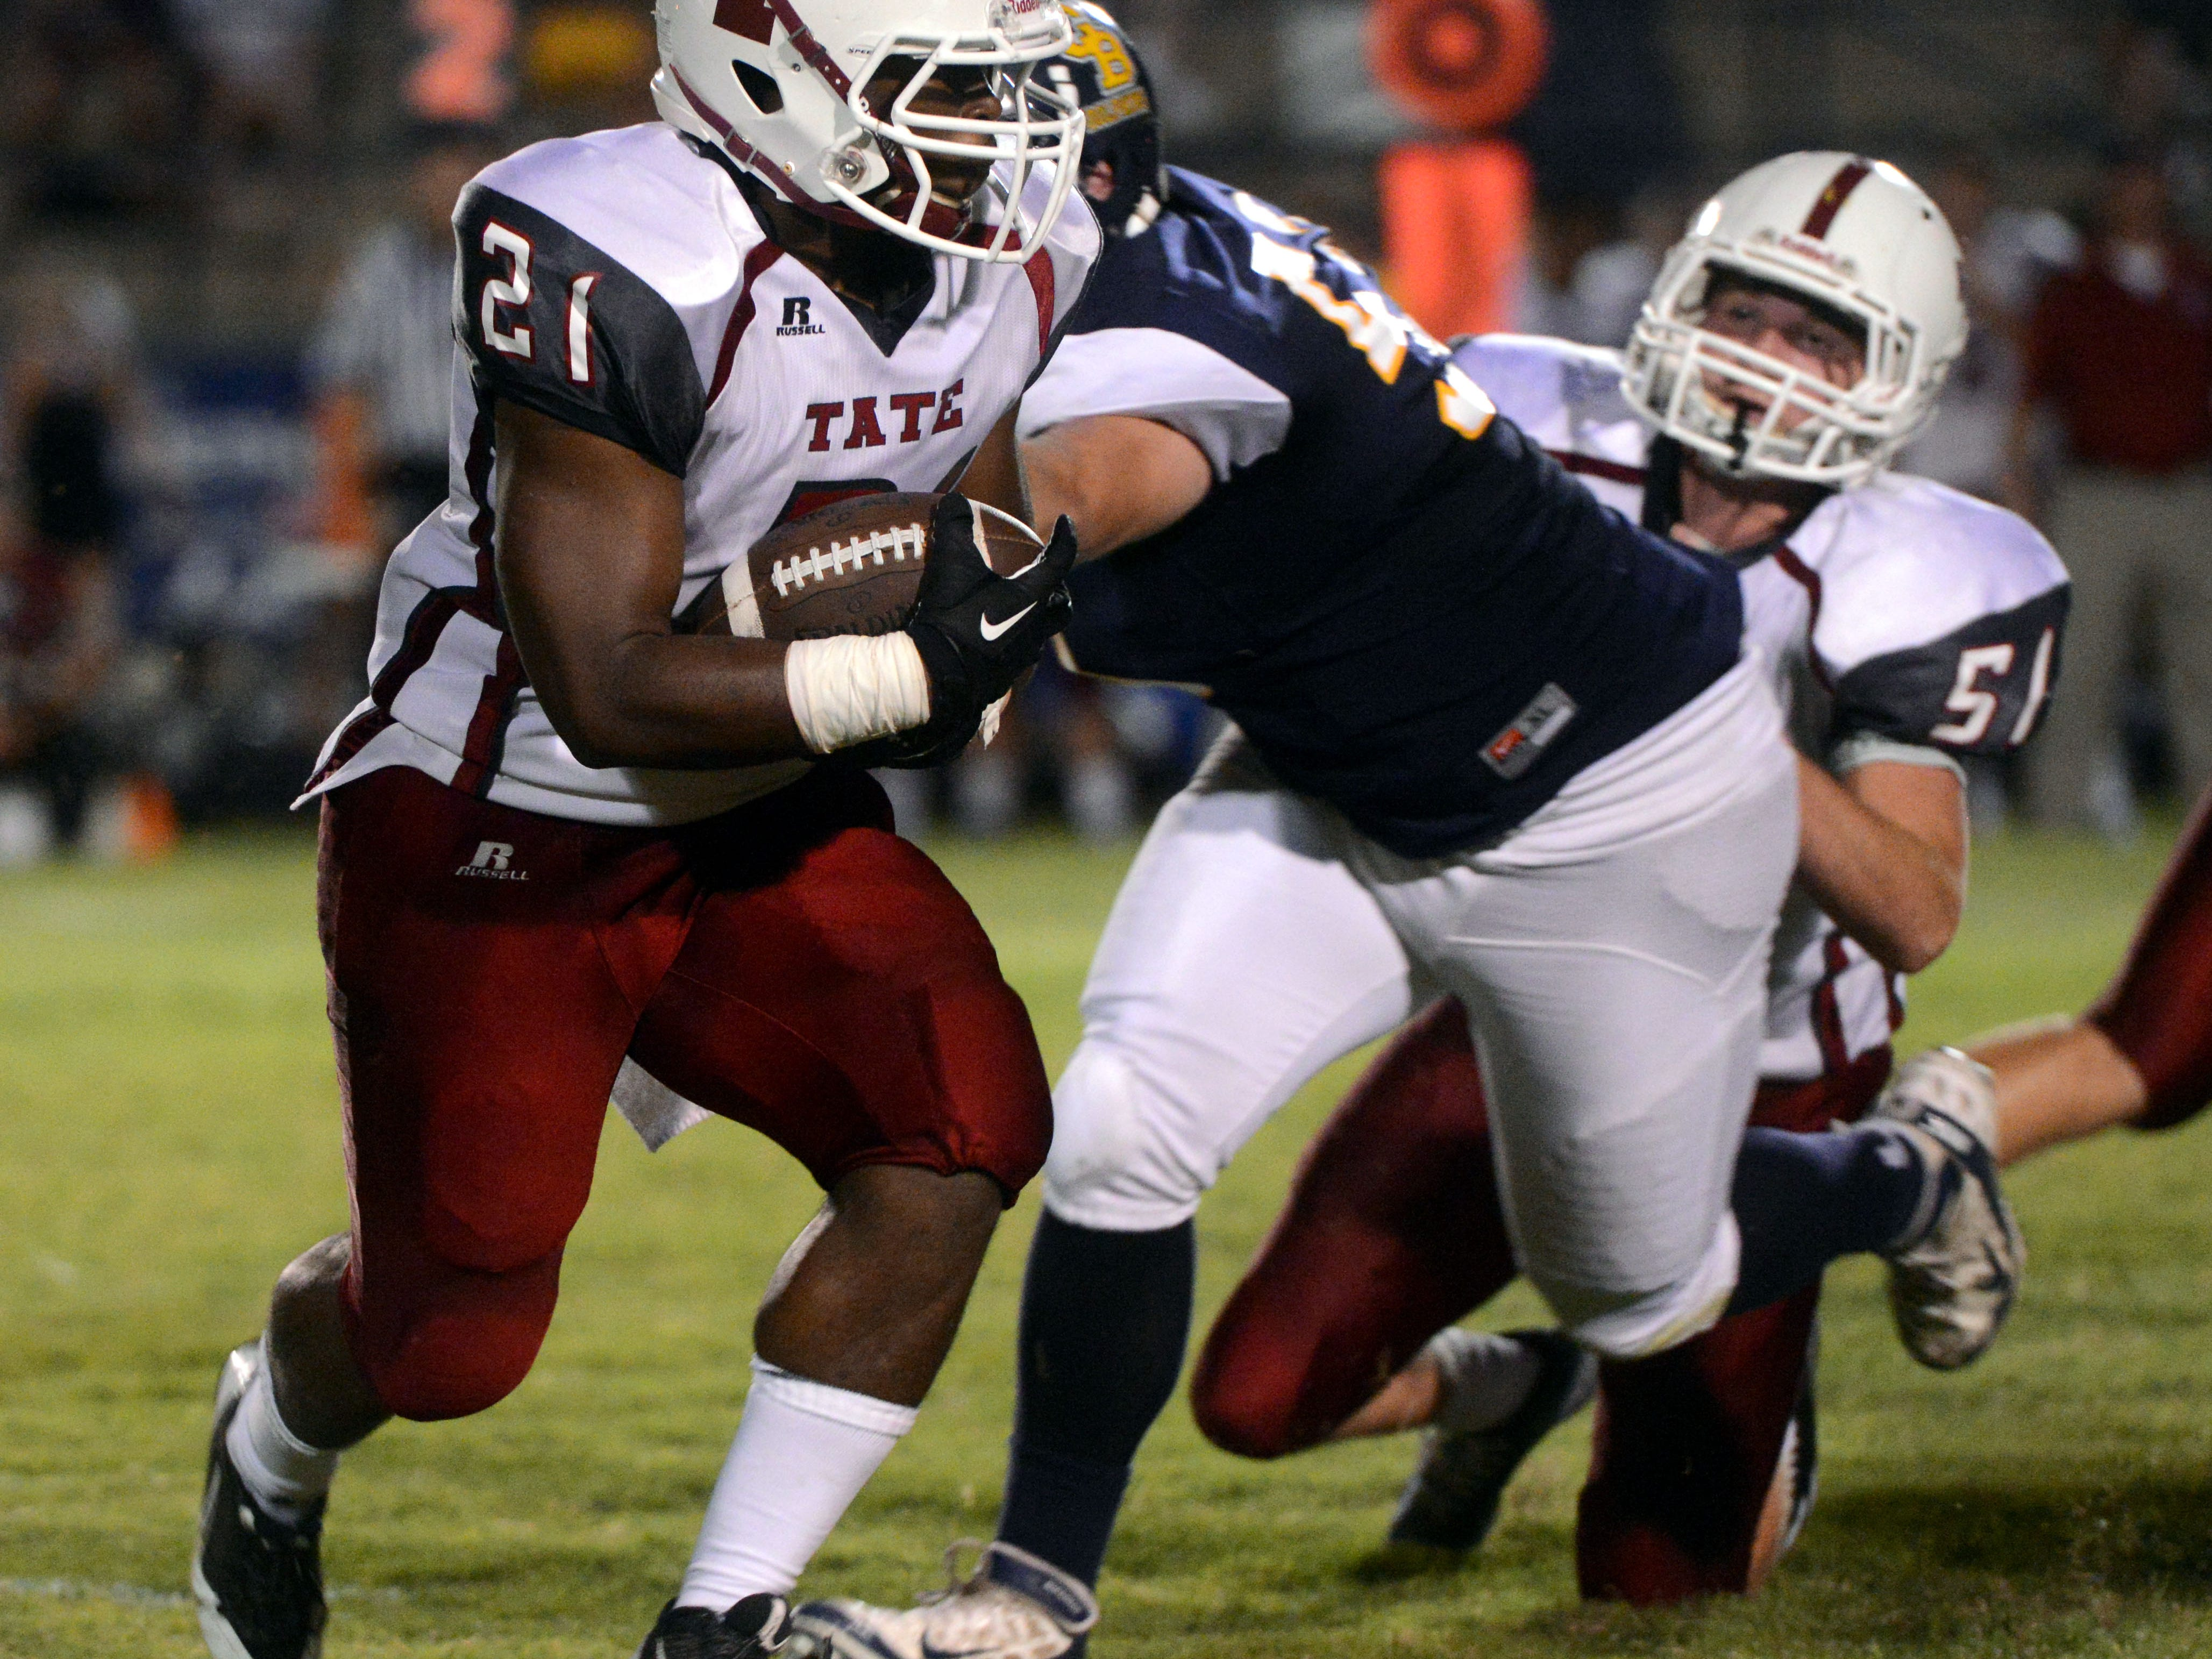 Tate High School running back LaDarius Thomas carries the ball through traffic Thursday while taking on Gulf Breeze their kickoff classic.